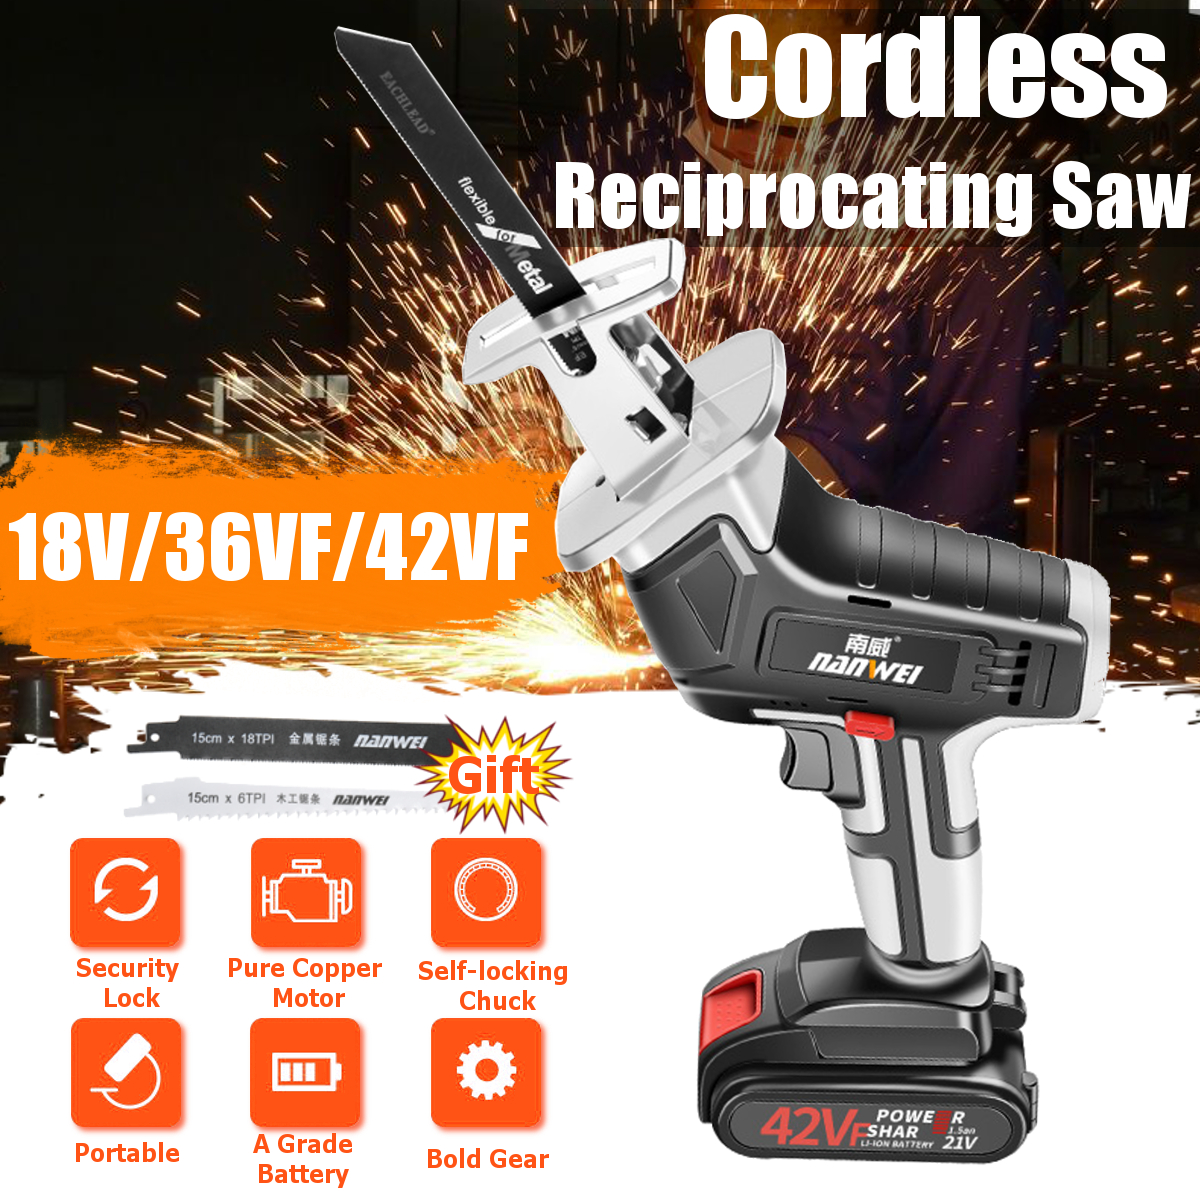 42V Cordless Reciprocating Saw Wood/Metal Cutting Saw Saber Saw Portable Electric Saw Rechargeable Power Tool + 2 Lithium Batter